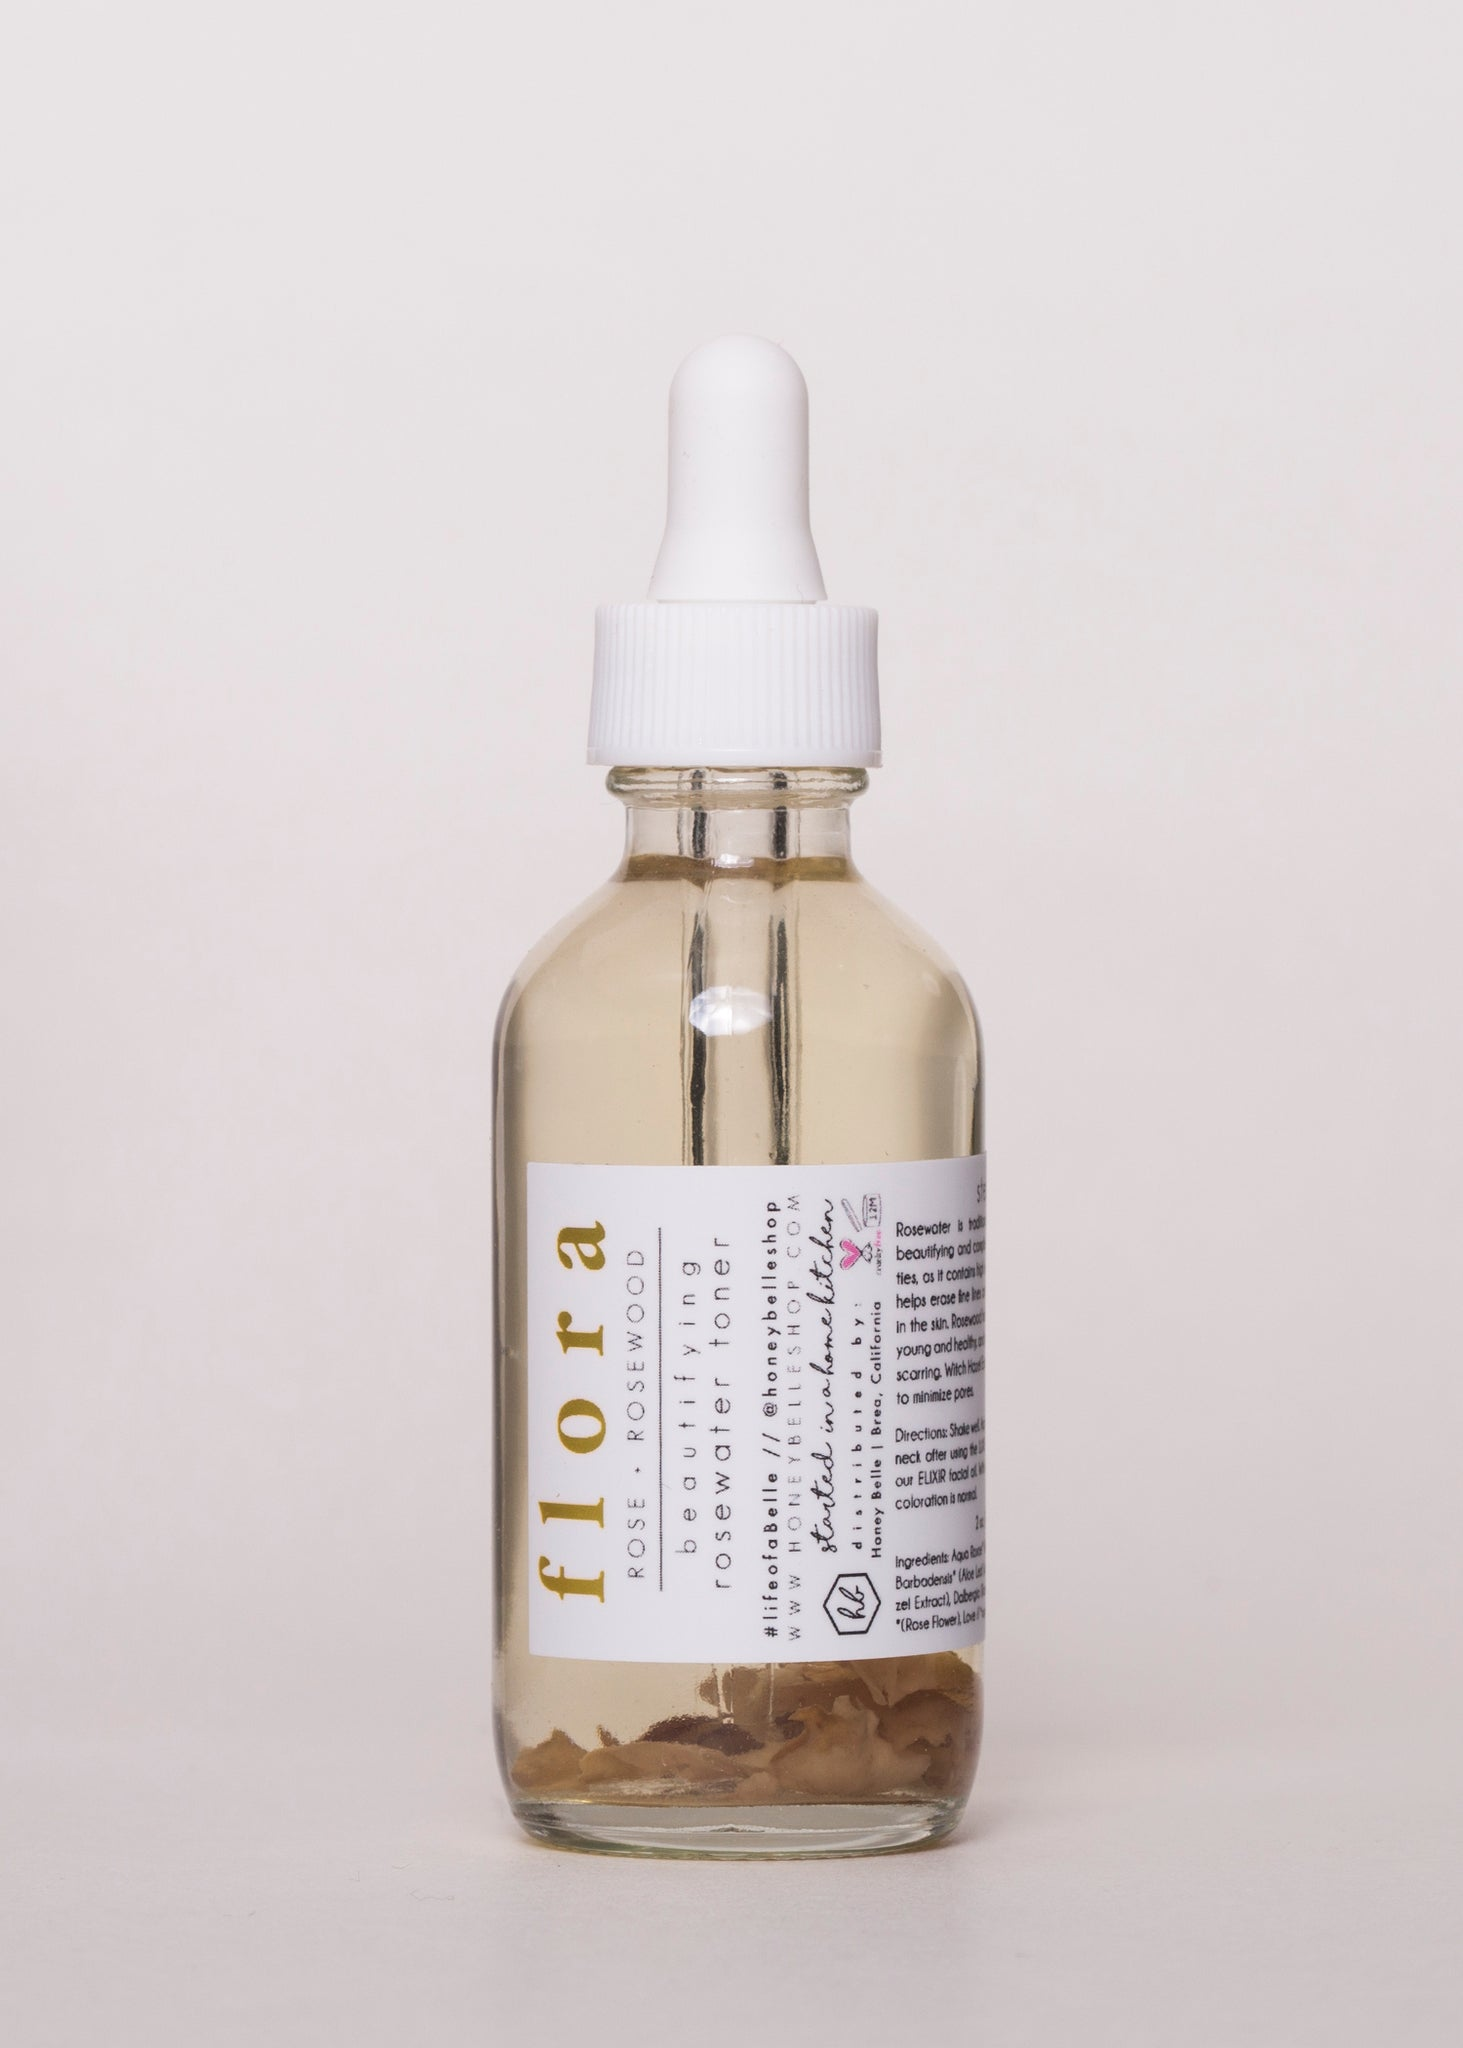 FLORA - Honey Belle | Goodnight Beauty | rosewater, toner, honey belle, natural skin care, natural beauty, made in usa, us brand, acne, dry skin